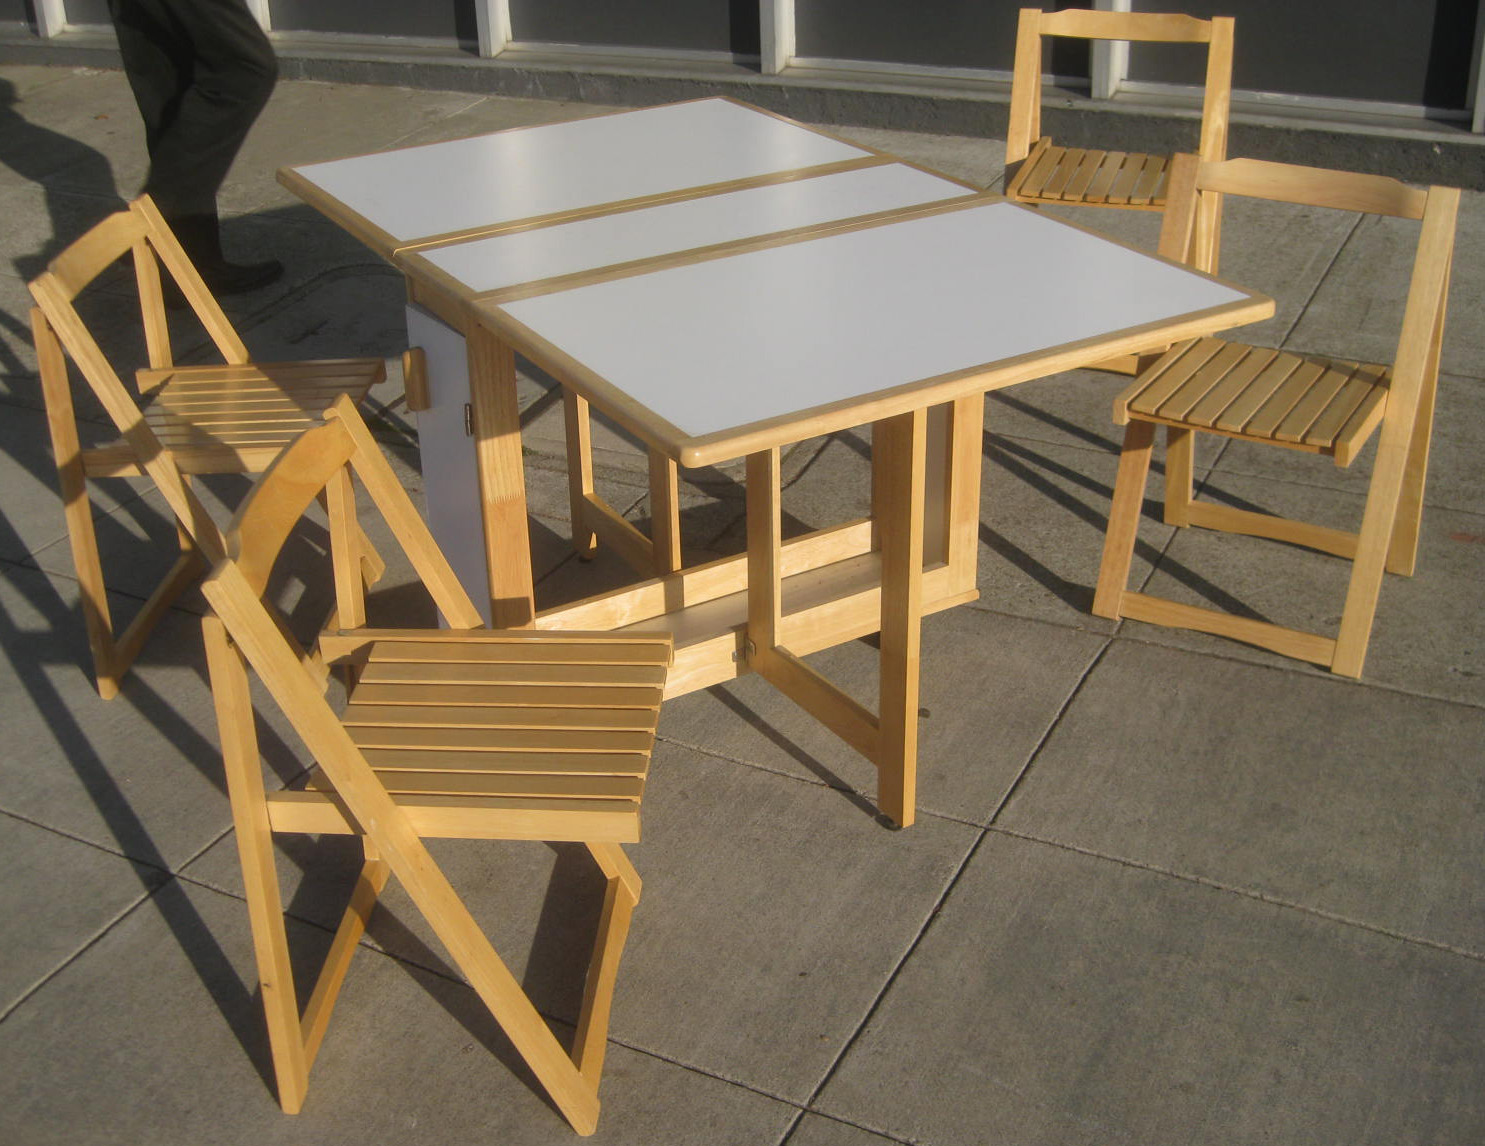 Ideal Outdoor Decor Ideas Using Foldable Dining Table and Chair